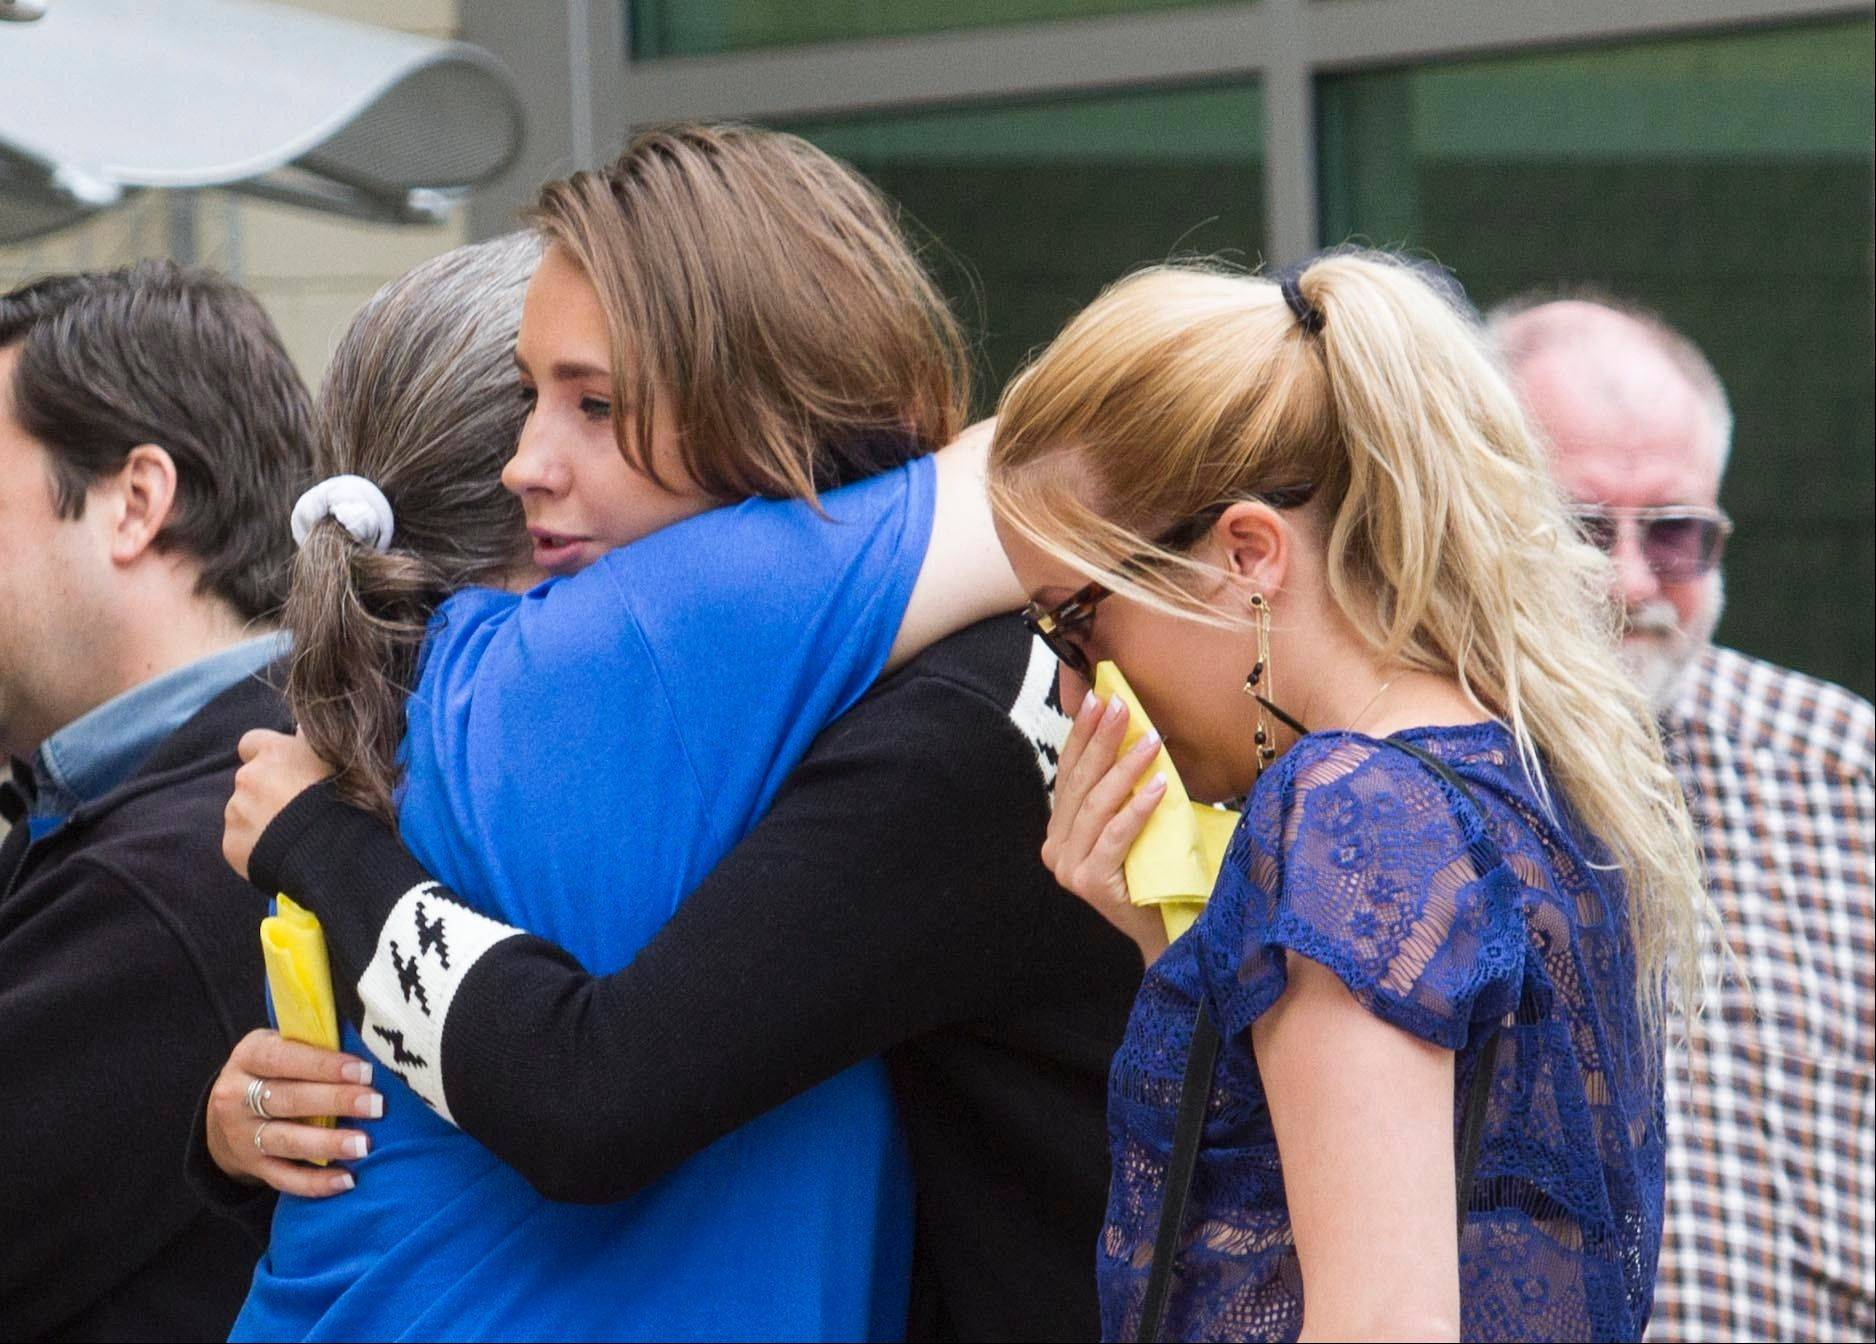 Students and faculty members of Santa Monica College comfort each other Sunday, two days after a shooting spree left six people dead, including the suspected gunman.